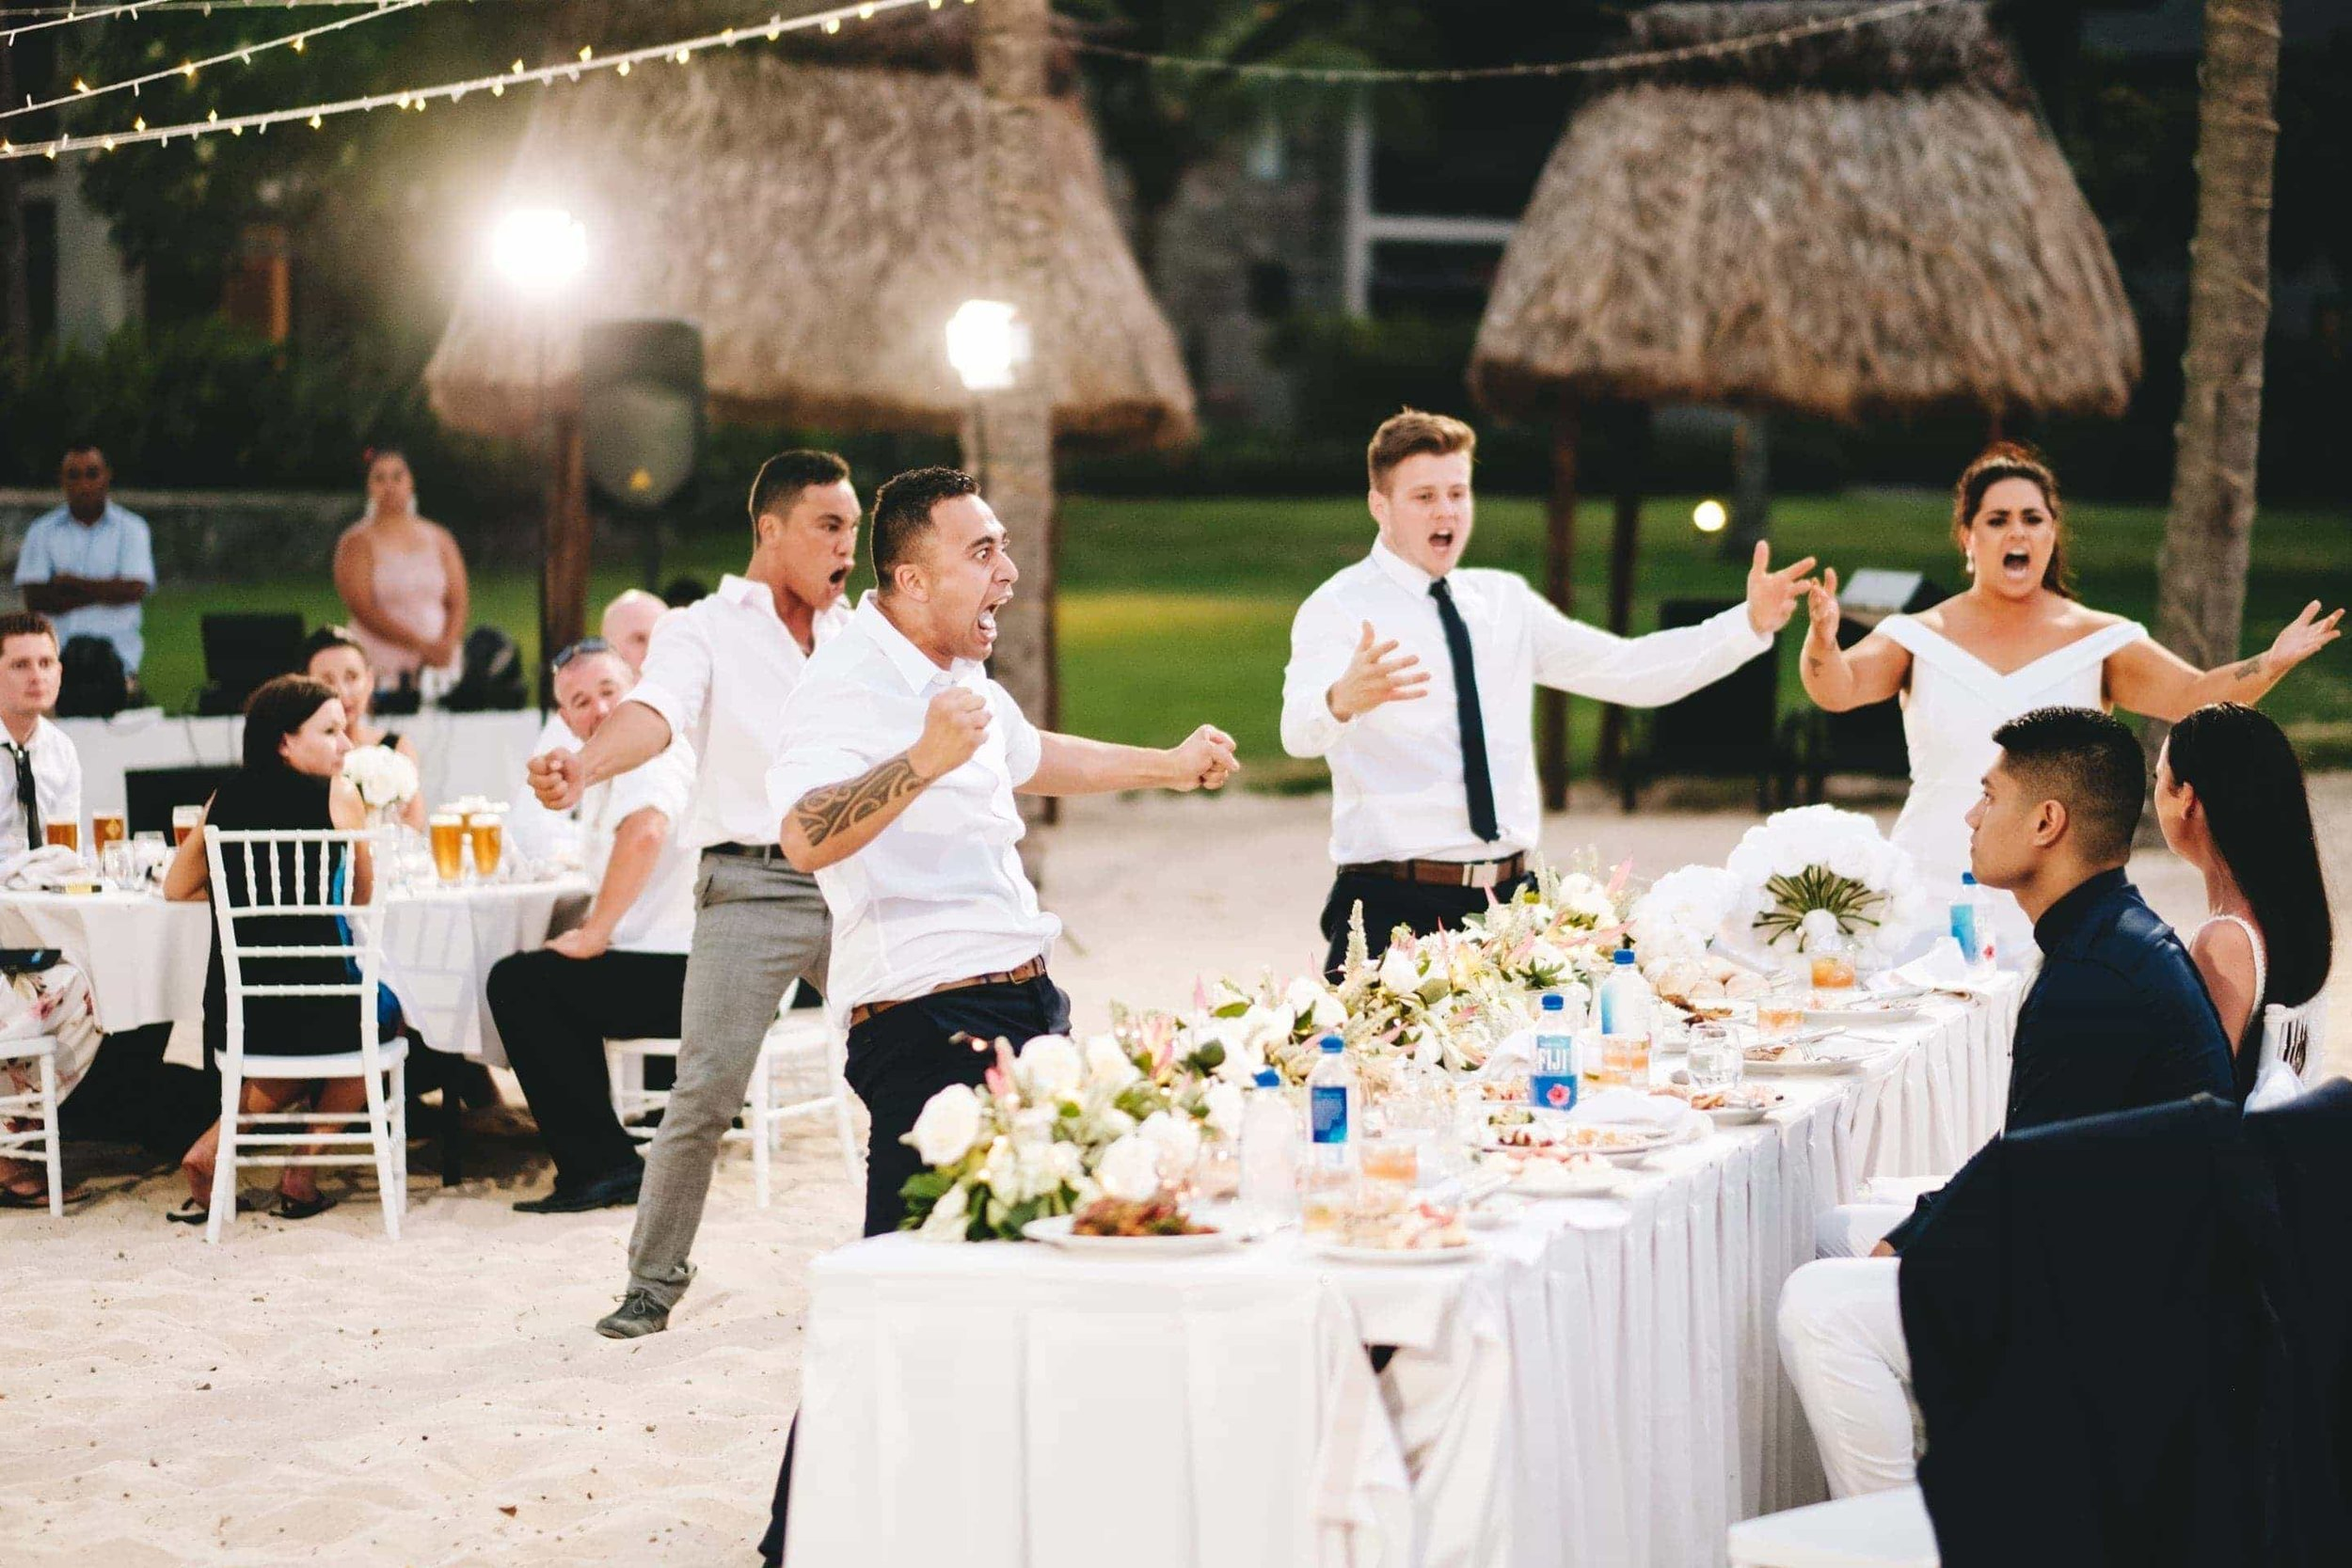 the groomsman and best man preform a traditional New Zealand Haka with guests for the wedding couple